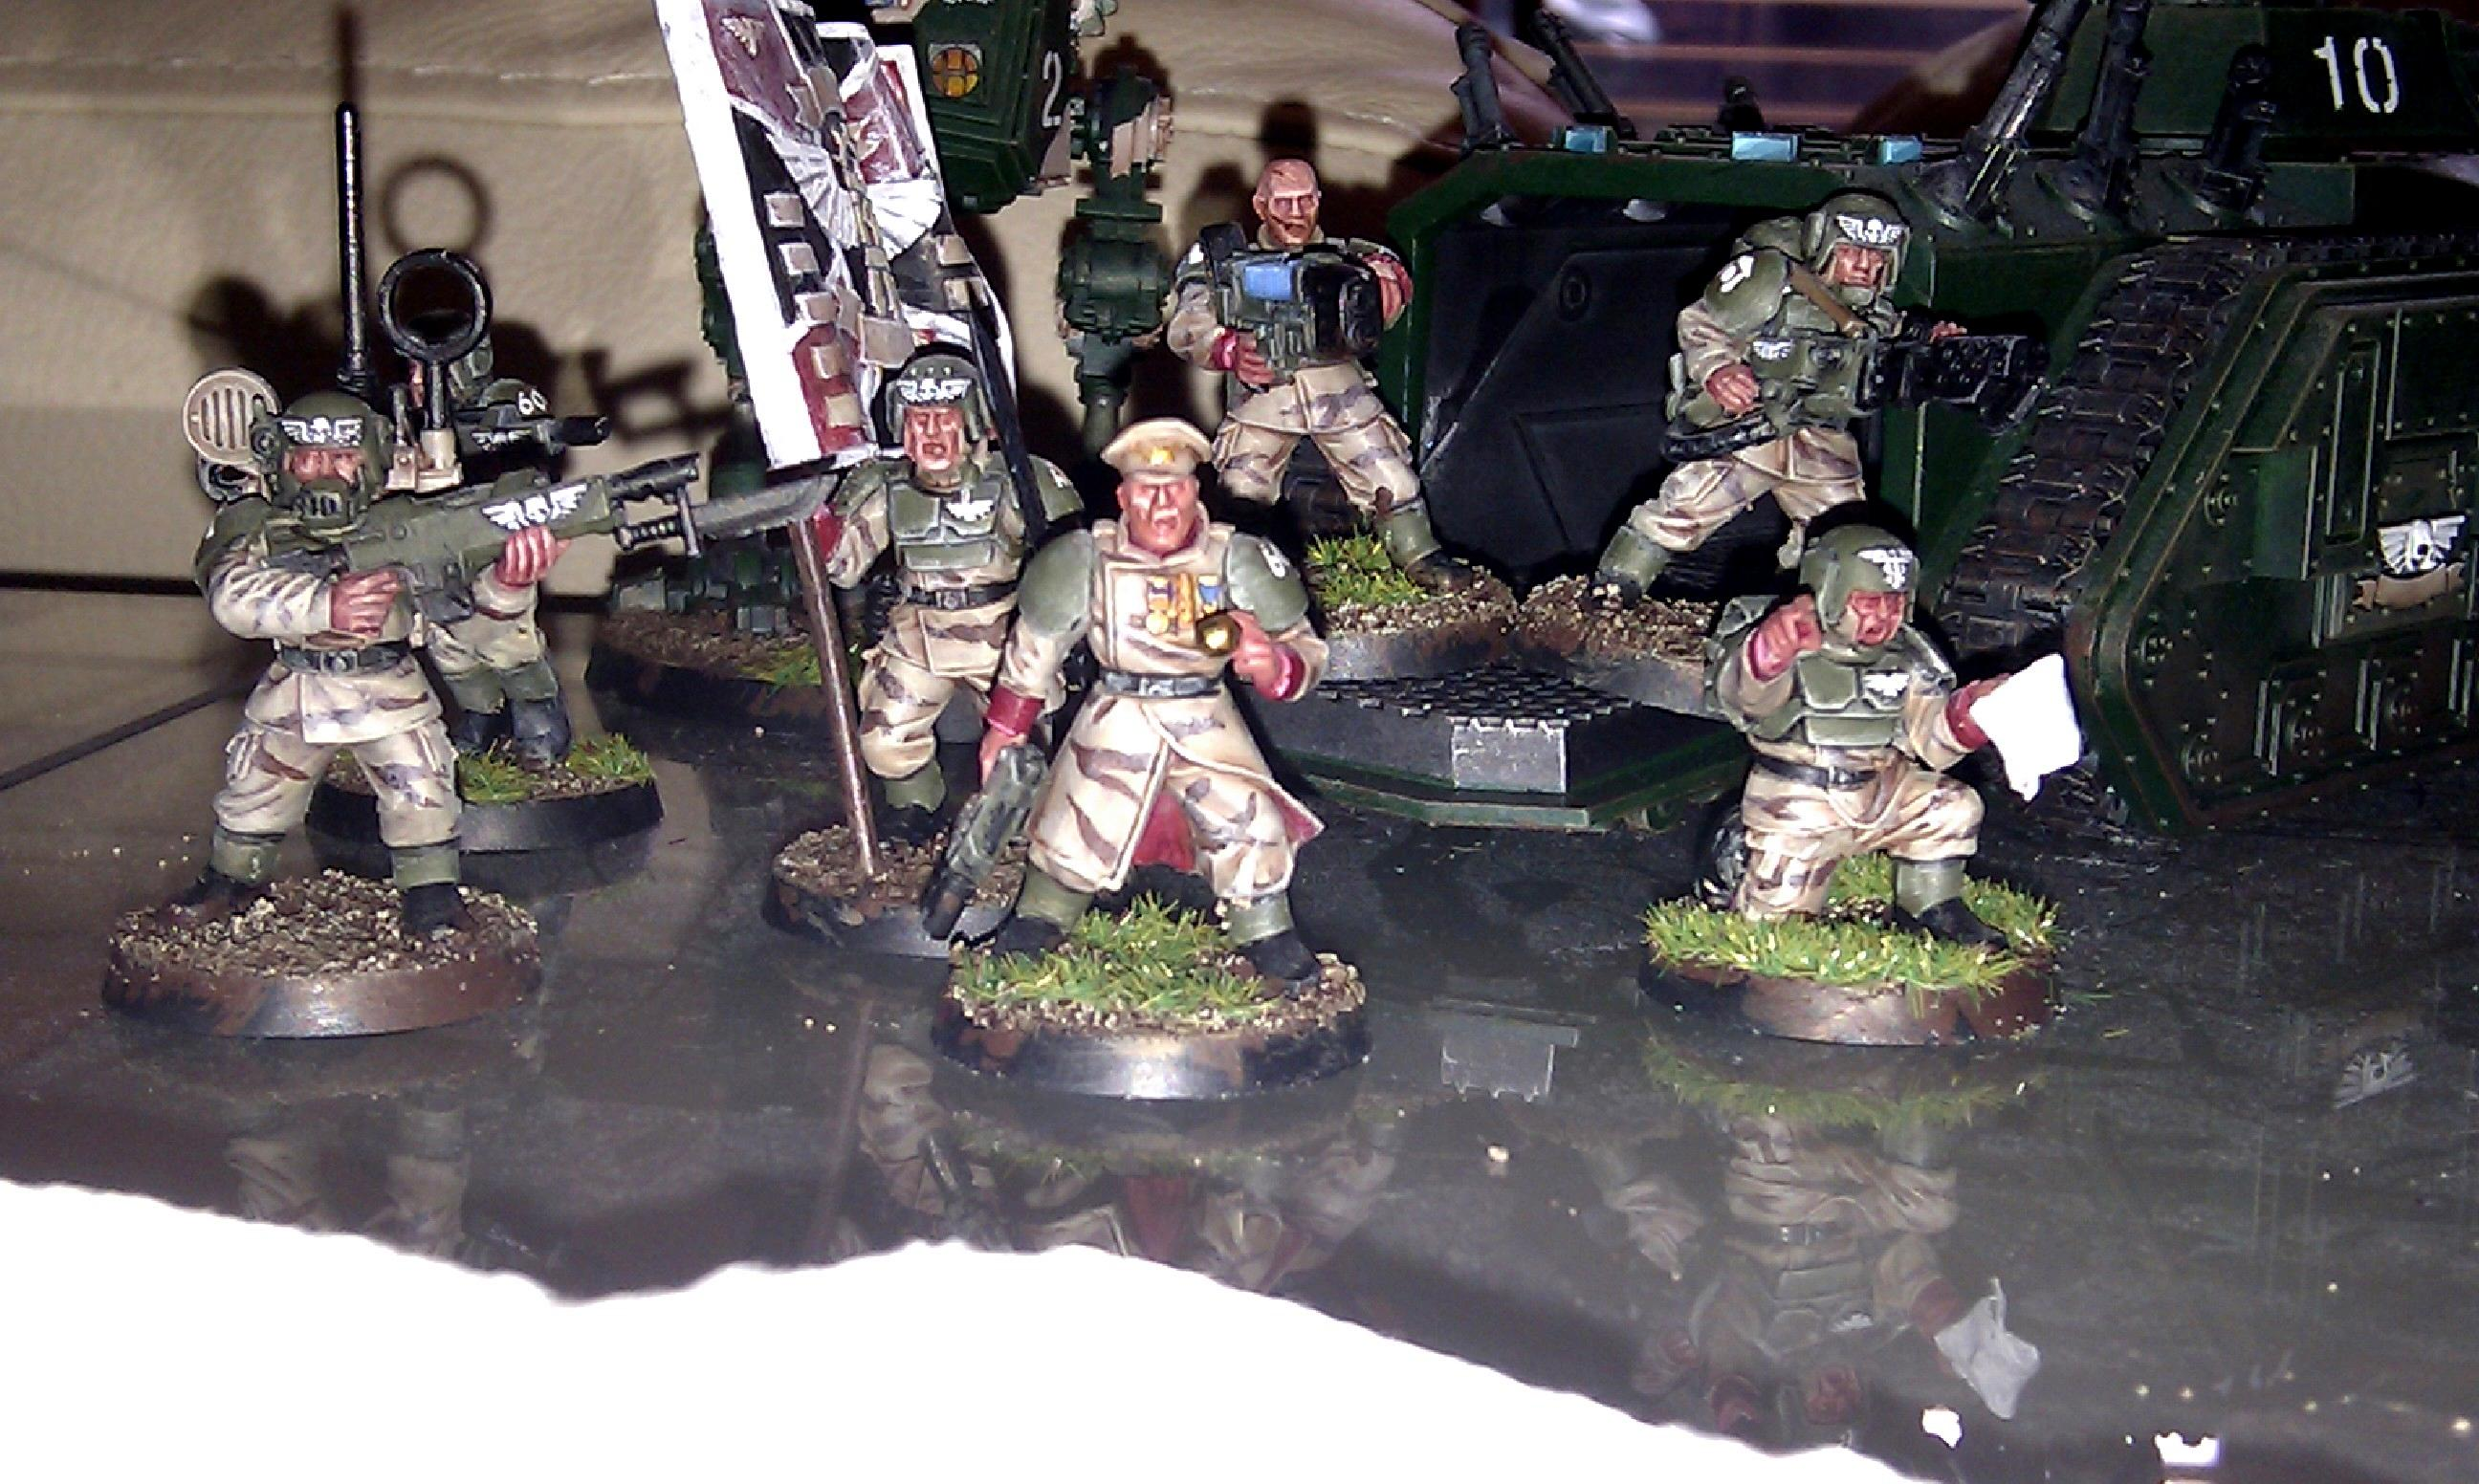 Cadians, Imperial Guard, Work In Progress